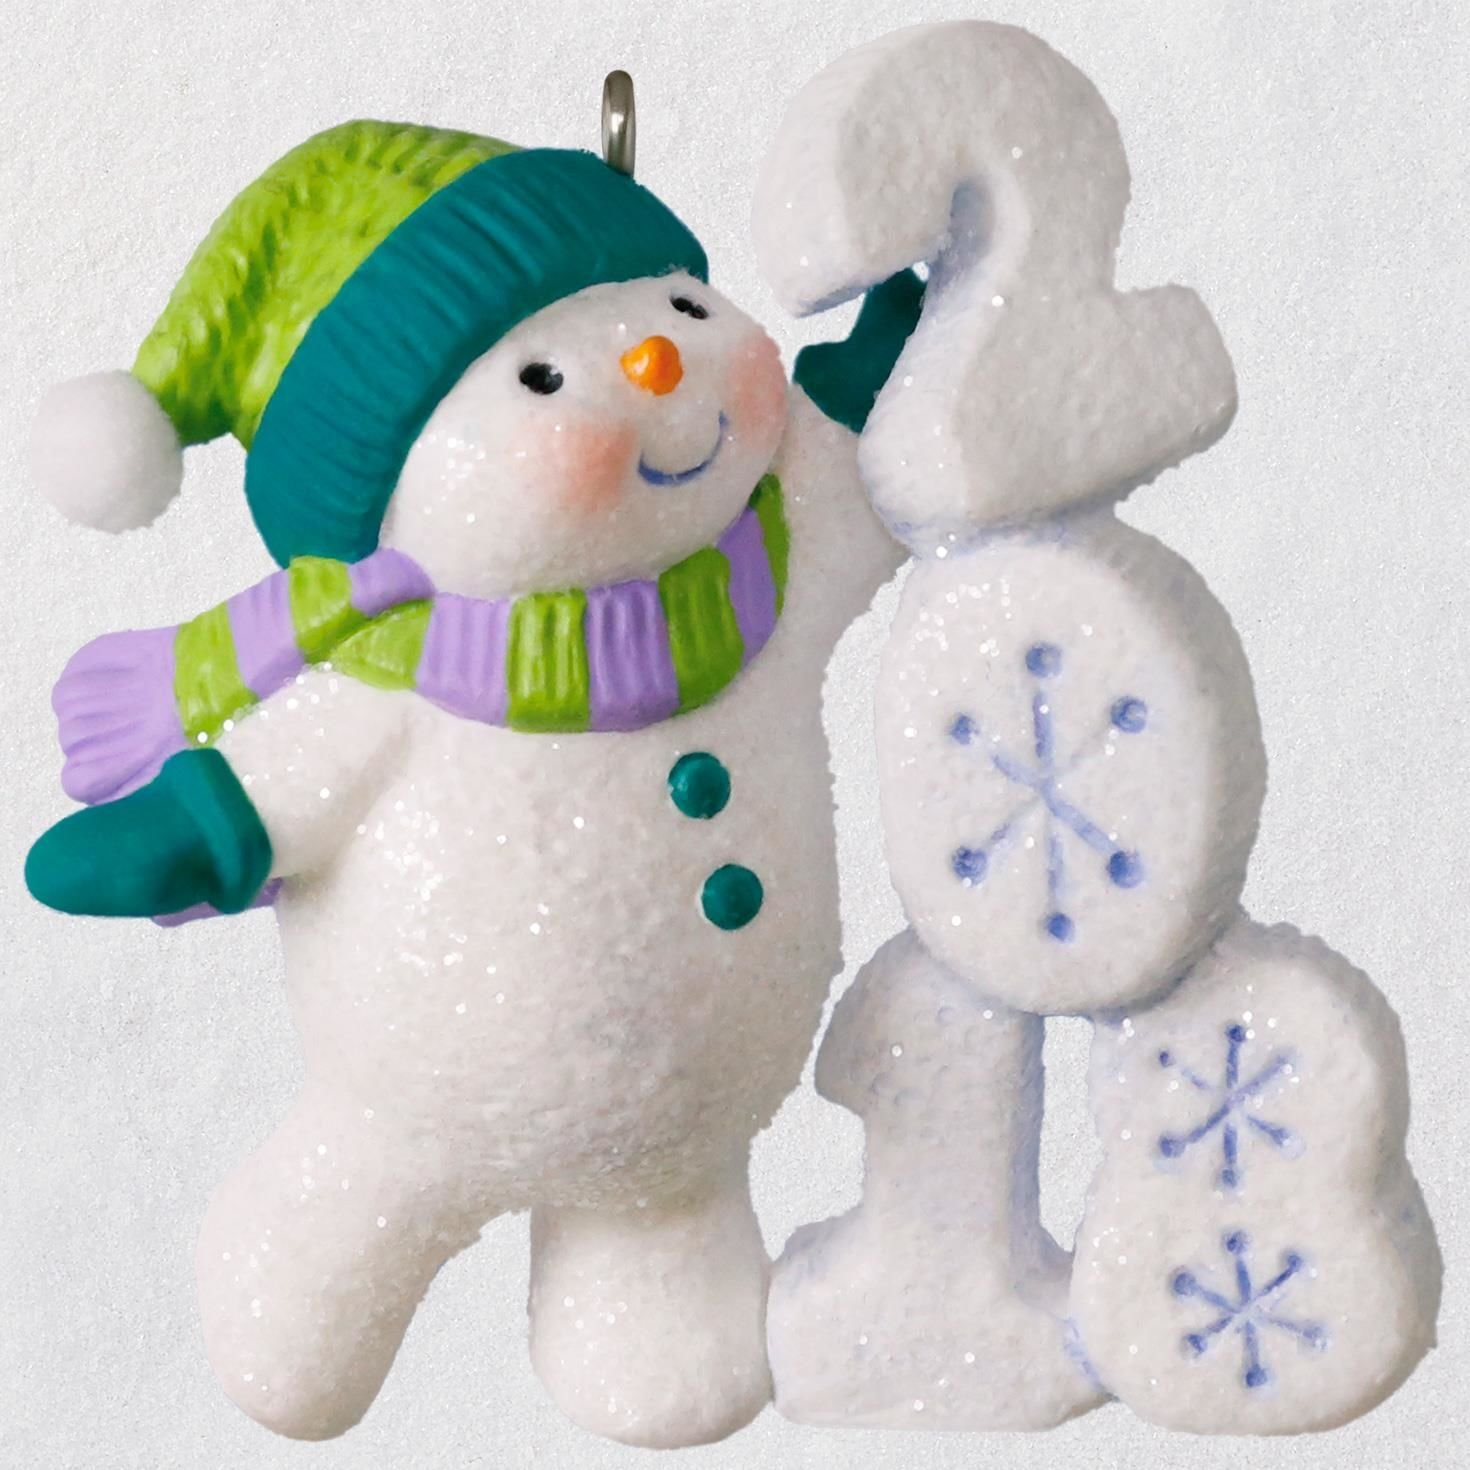 Hallmark Christmas Ornament Keepsake 2018 Year Dated, Frosty Fun Decade by Hallmark